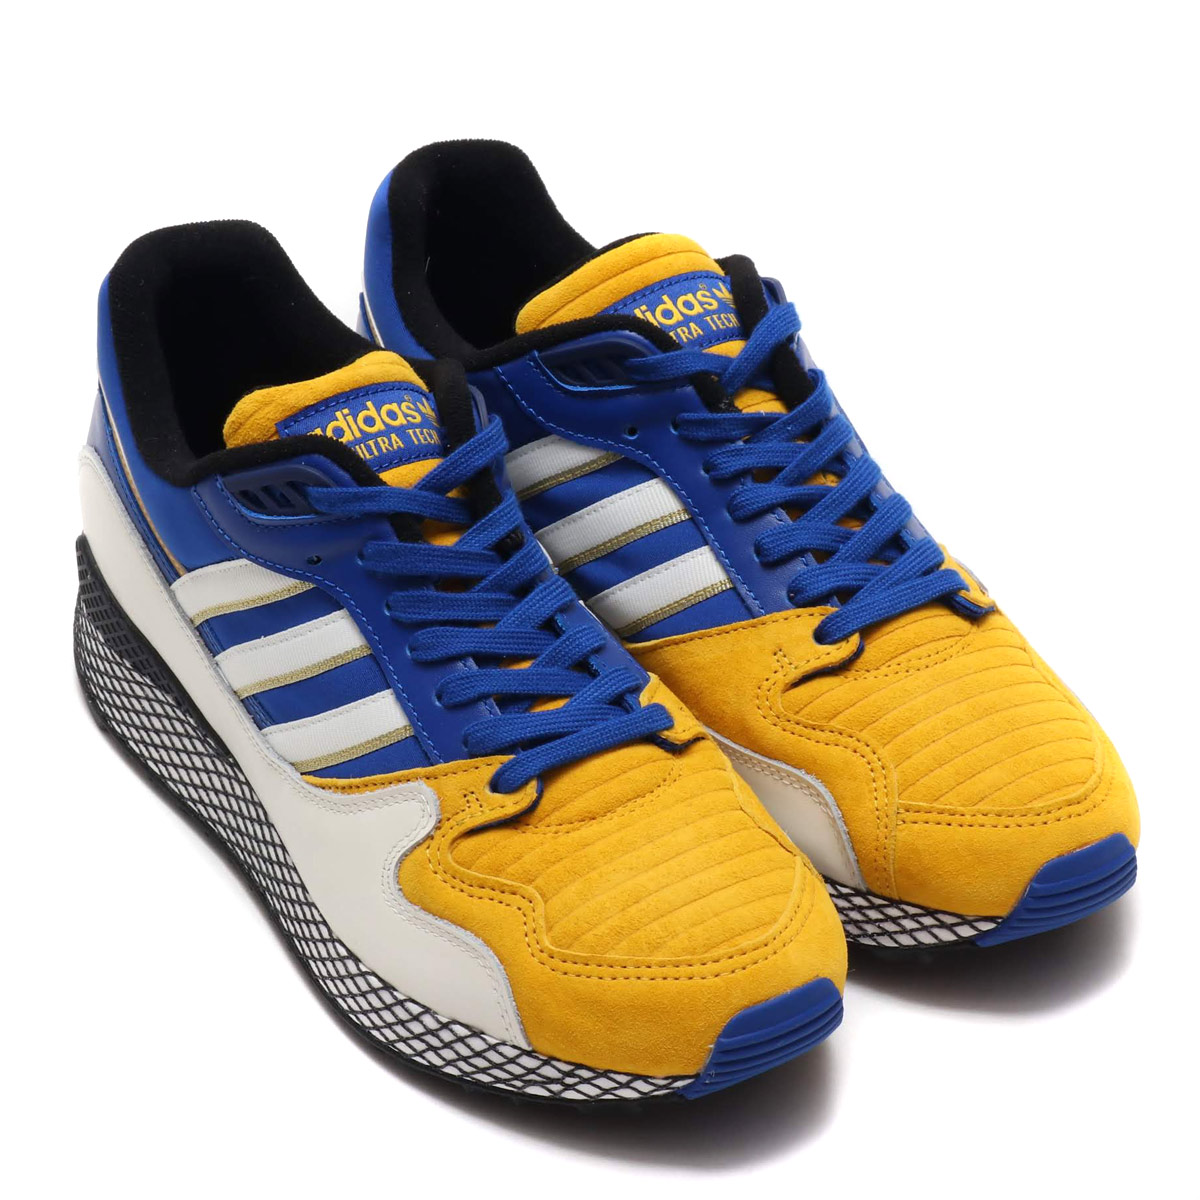 adidas Originals ULTRA TECH DB(アディダス オリジナルス ウルトラテックDB)SUPPLIER COLOR/SUPPLIER COLOR/SUPPLIER COLOR【メンズ スニーカー】18FW-I